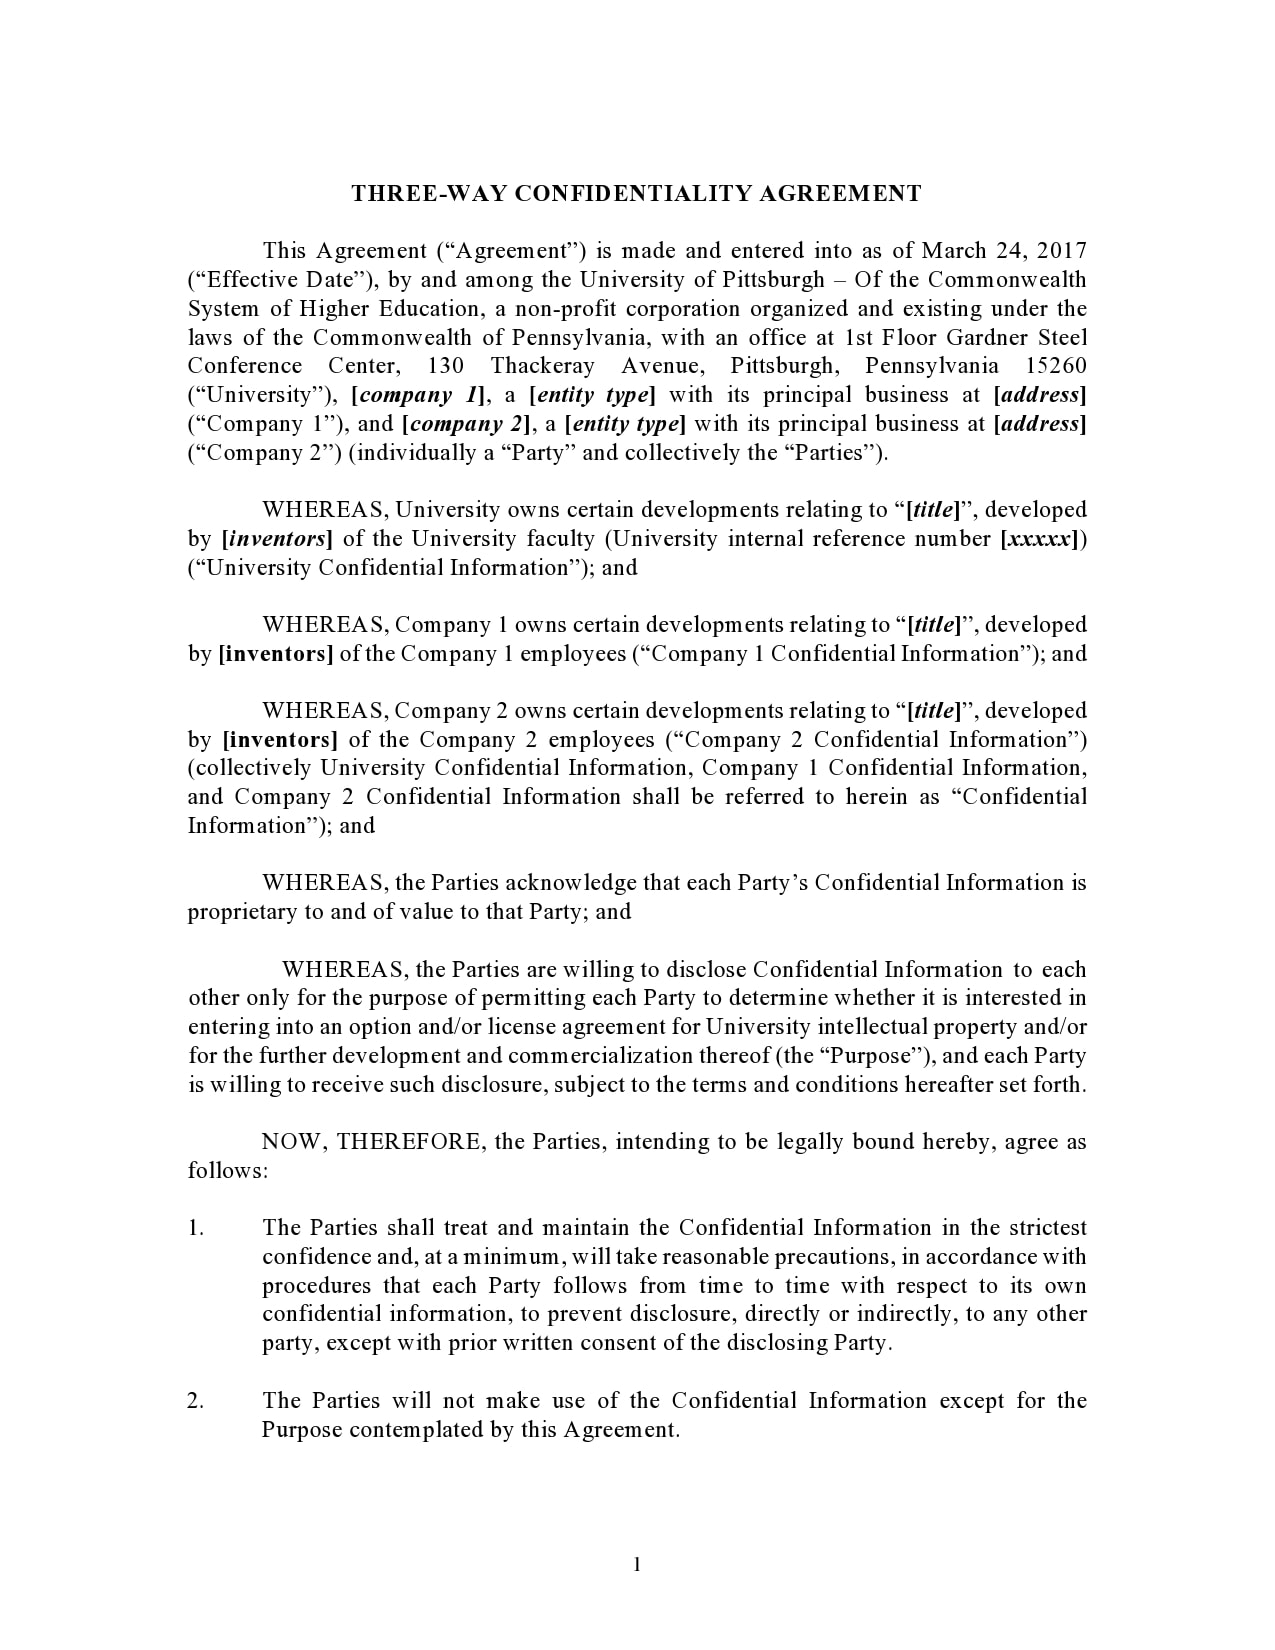 confidentiality agreement template 28